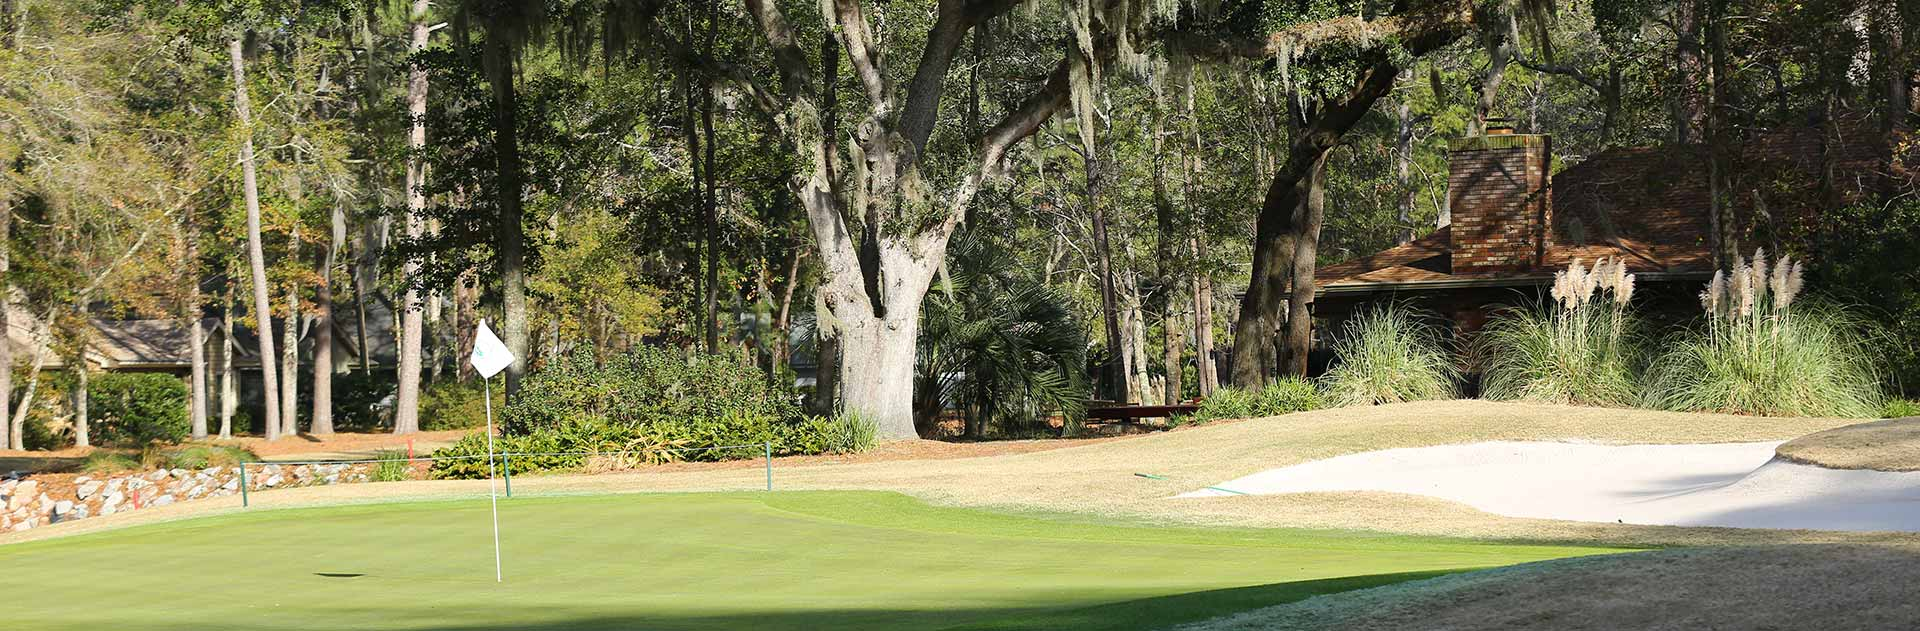 Hilton Head Plantation golf course view